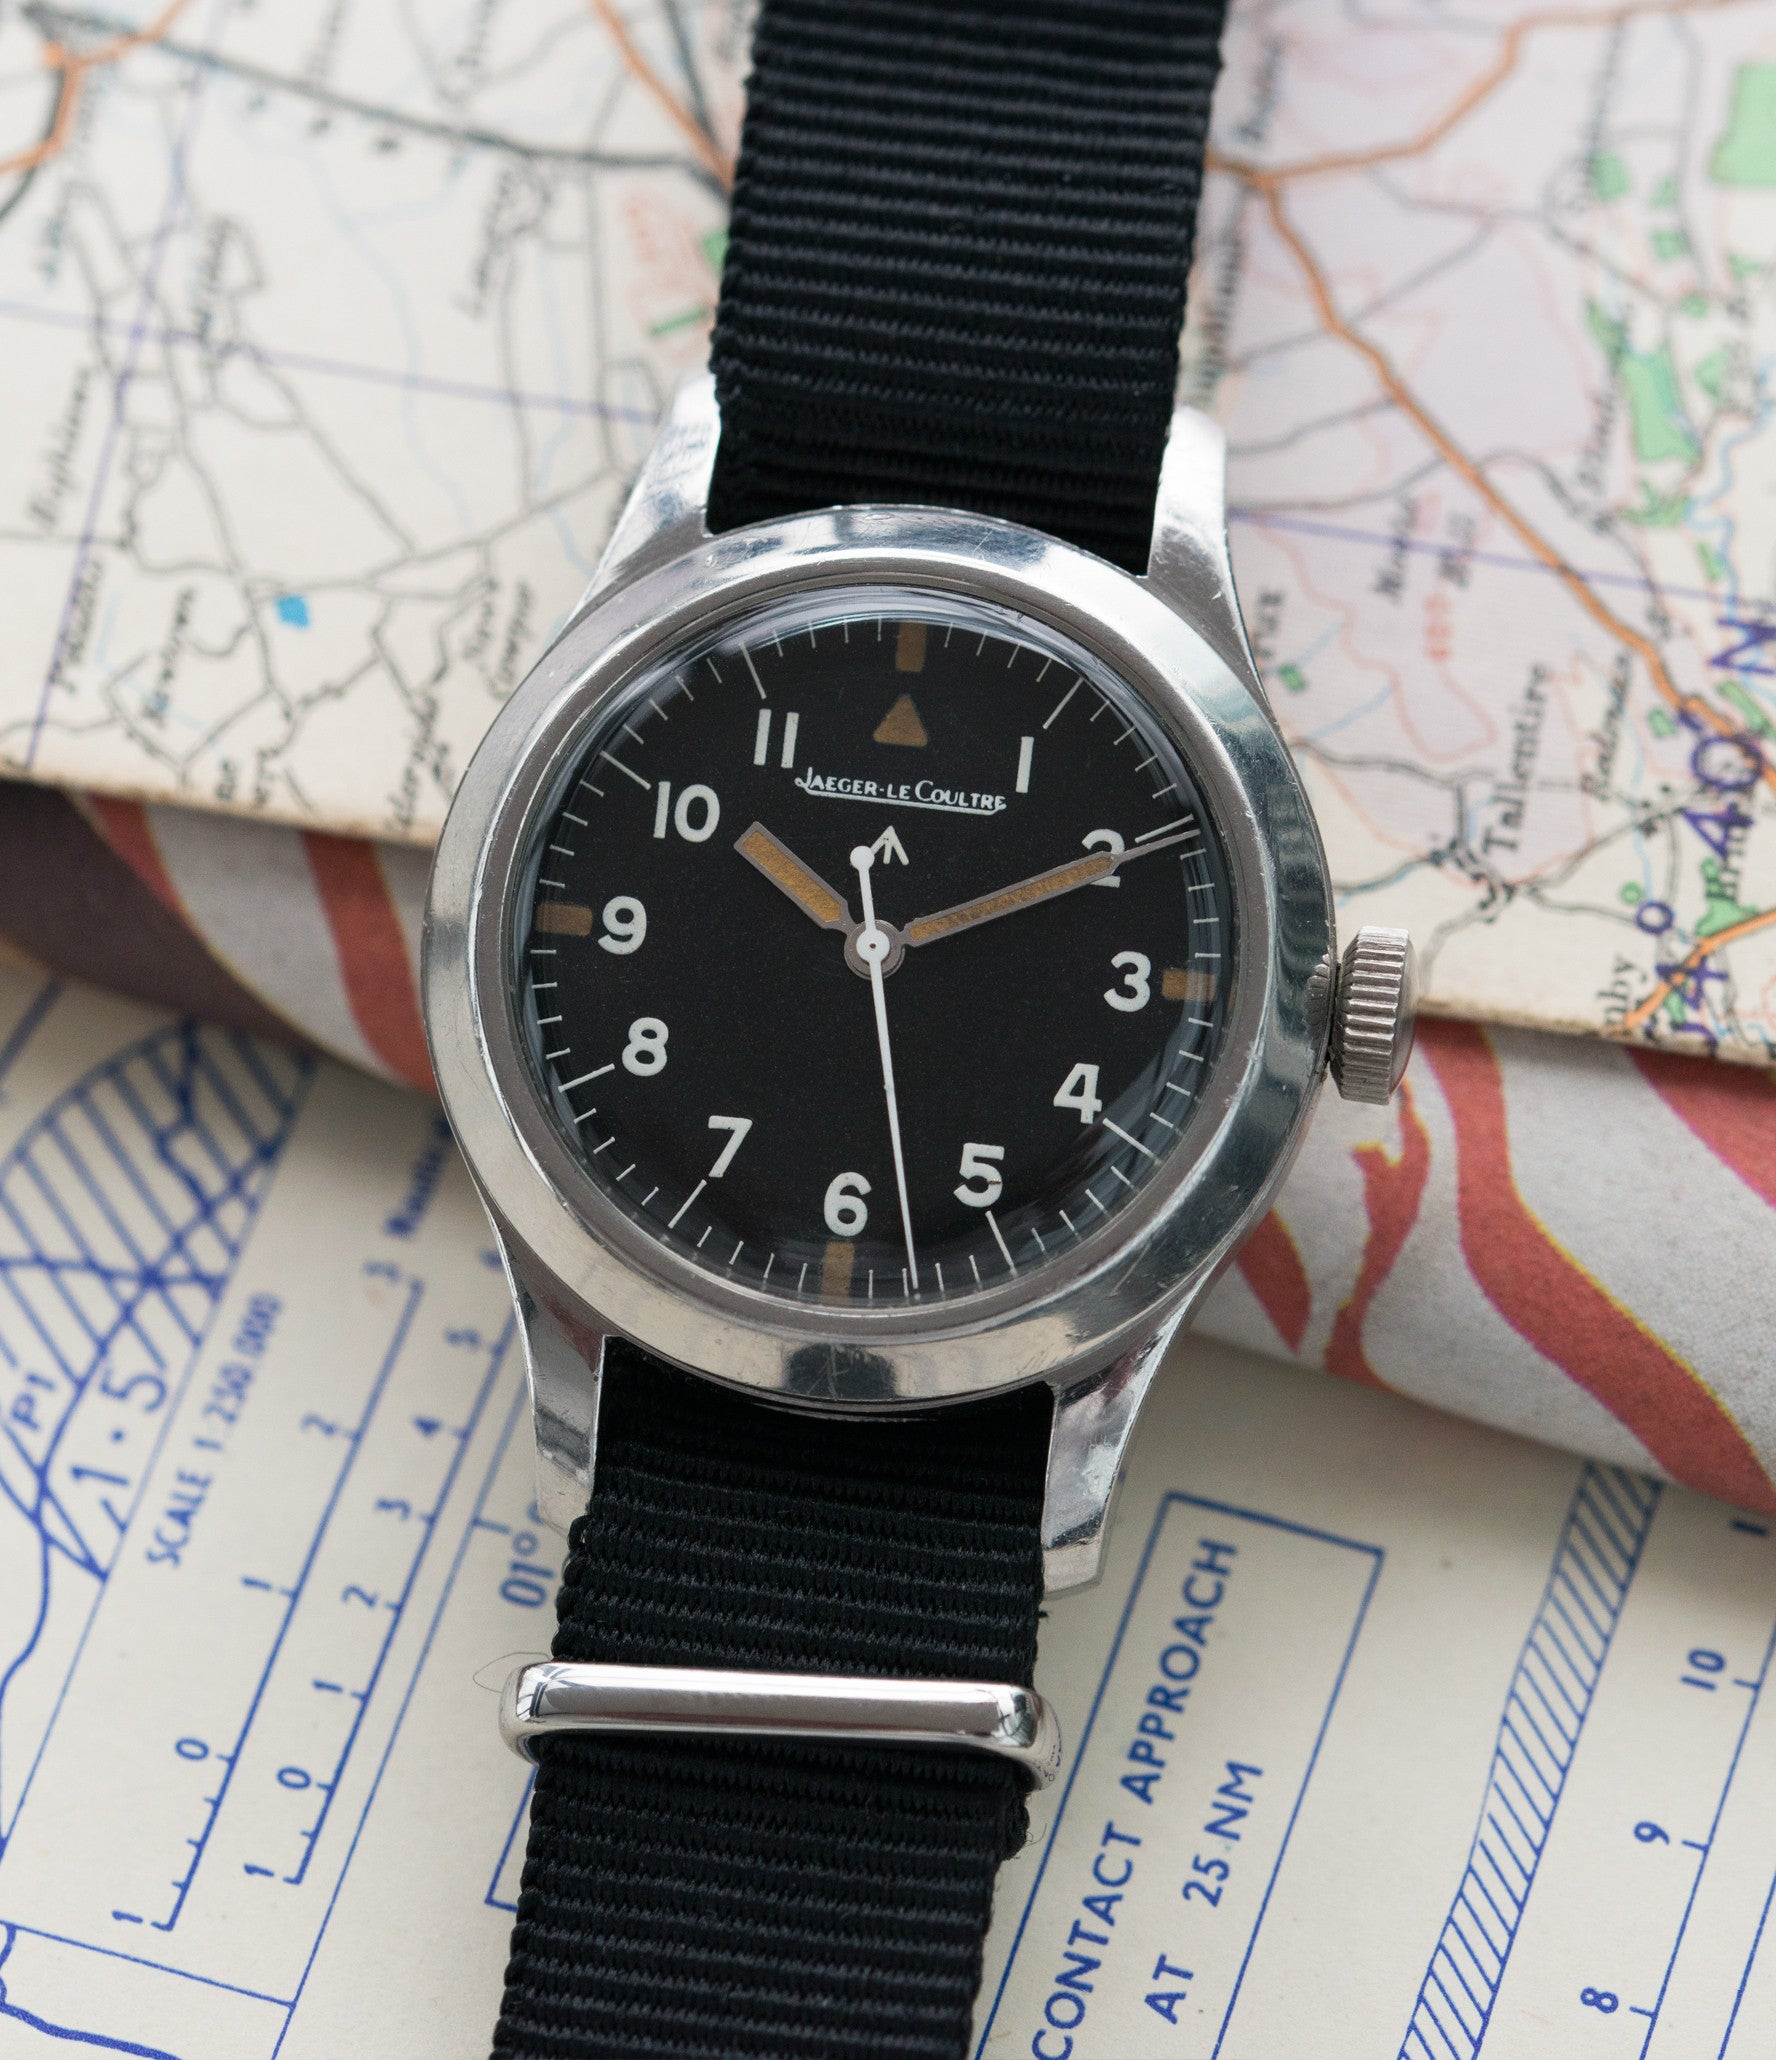 buy vintage military Jaeger-LeCoultre Mark 11 6B/346 RAF British watch online at a Collected Man London online vintage military watch specialist